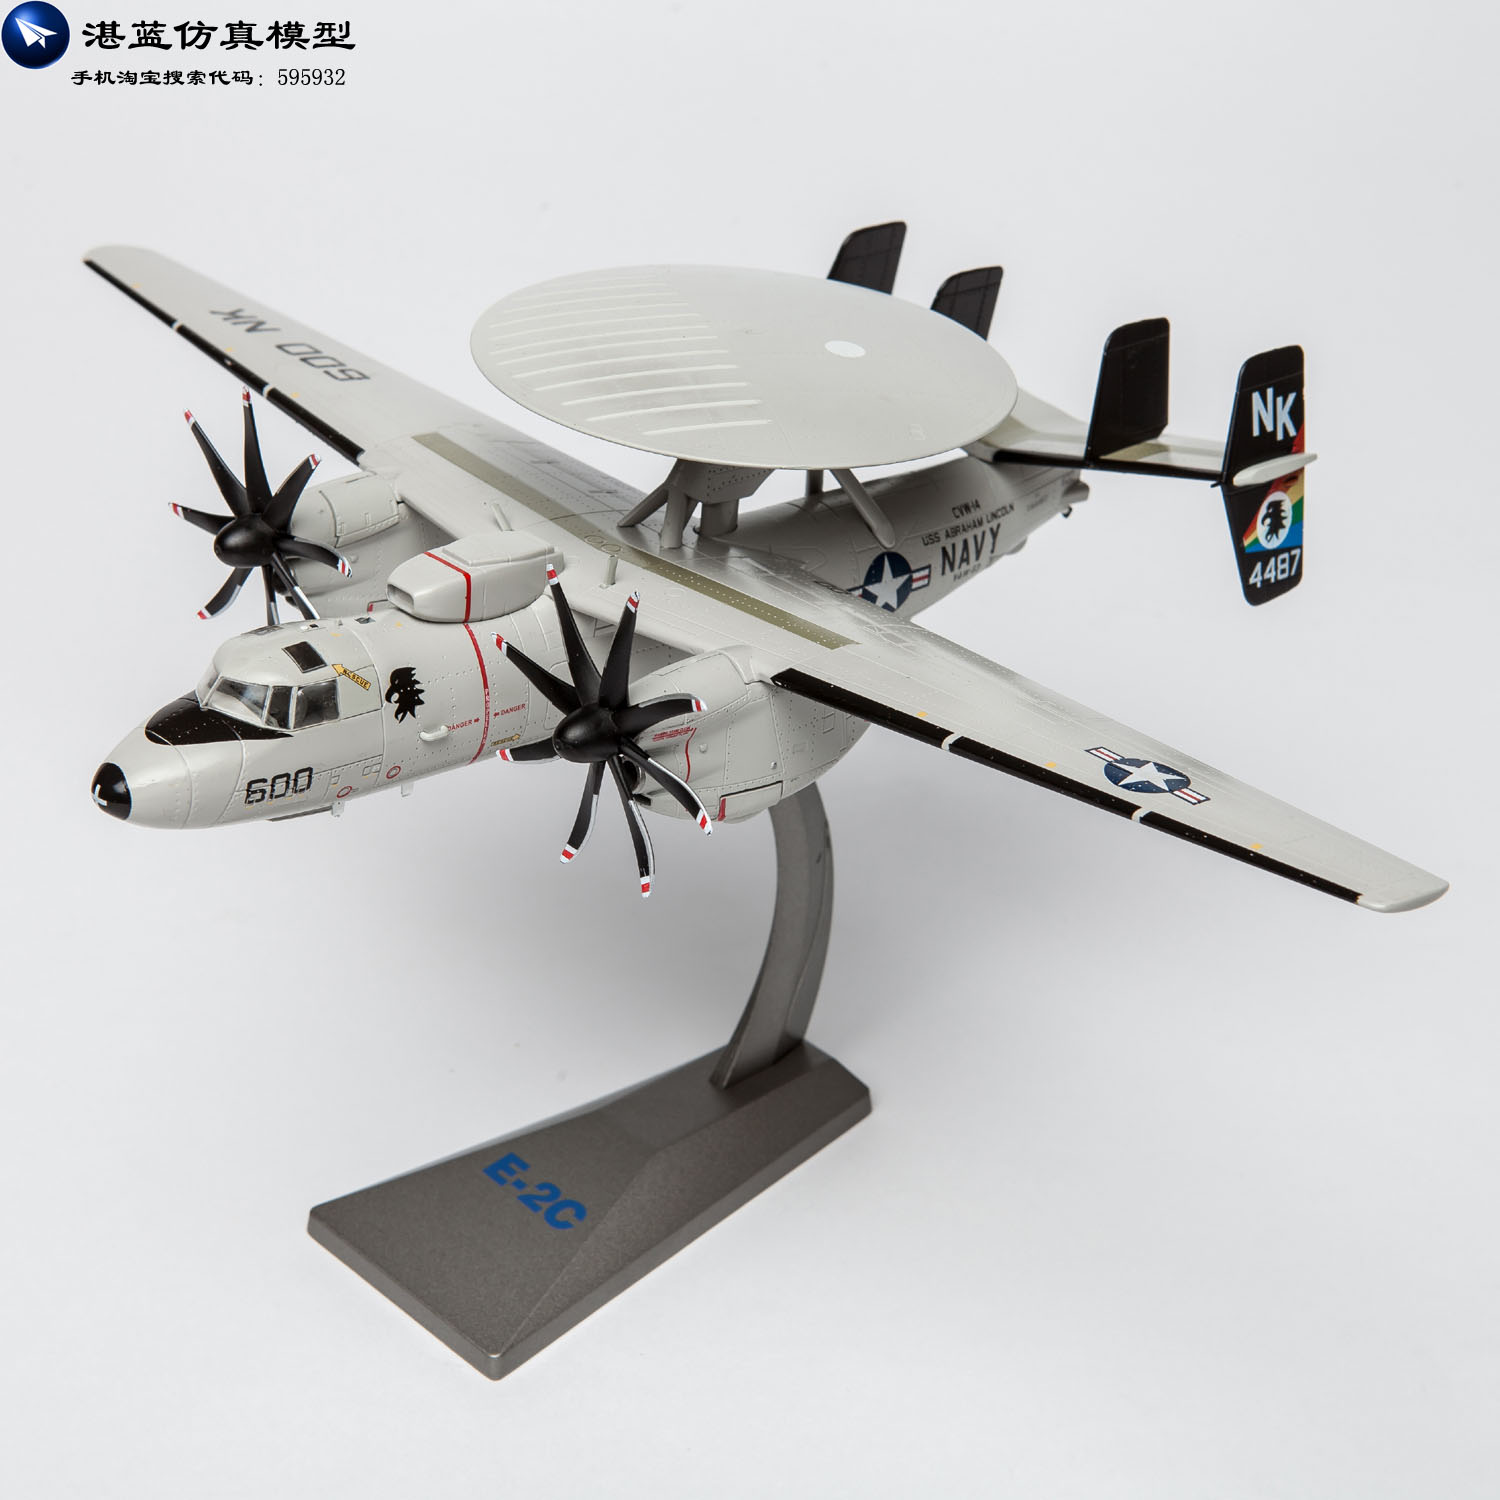 Brand New 1/72 Scale Plane Model Toys USAF E 2C Hawkeye Airborne Early  Warning Airplane Diecast Metal Fighter Model Toy On Aliexpress.com |  Alibaba Group  How Would You Weigh A Plane Without Scales